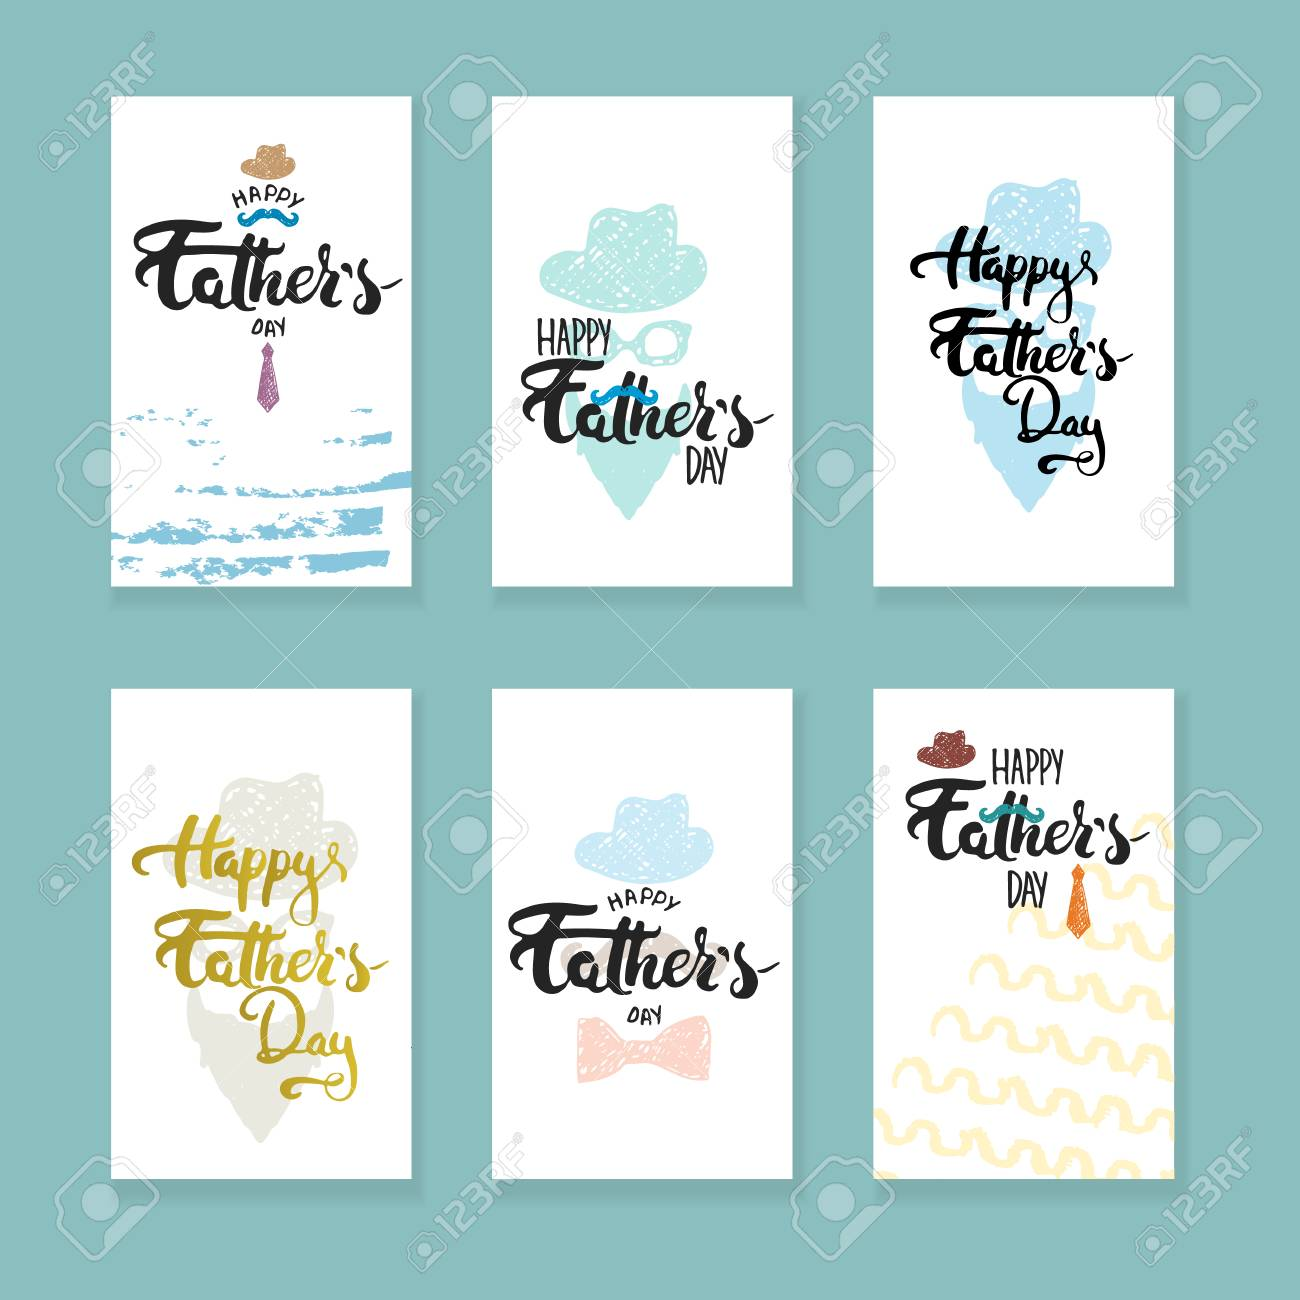 Happy fathers day lettering calligraphy greeting cards set with happy fathers day lettering calligraphy greeting cards set with hat mustache bow tie m4hsunfo